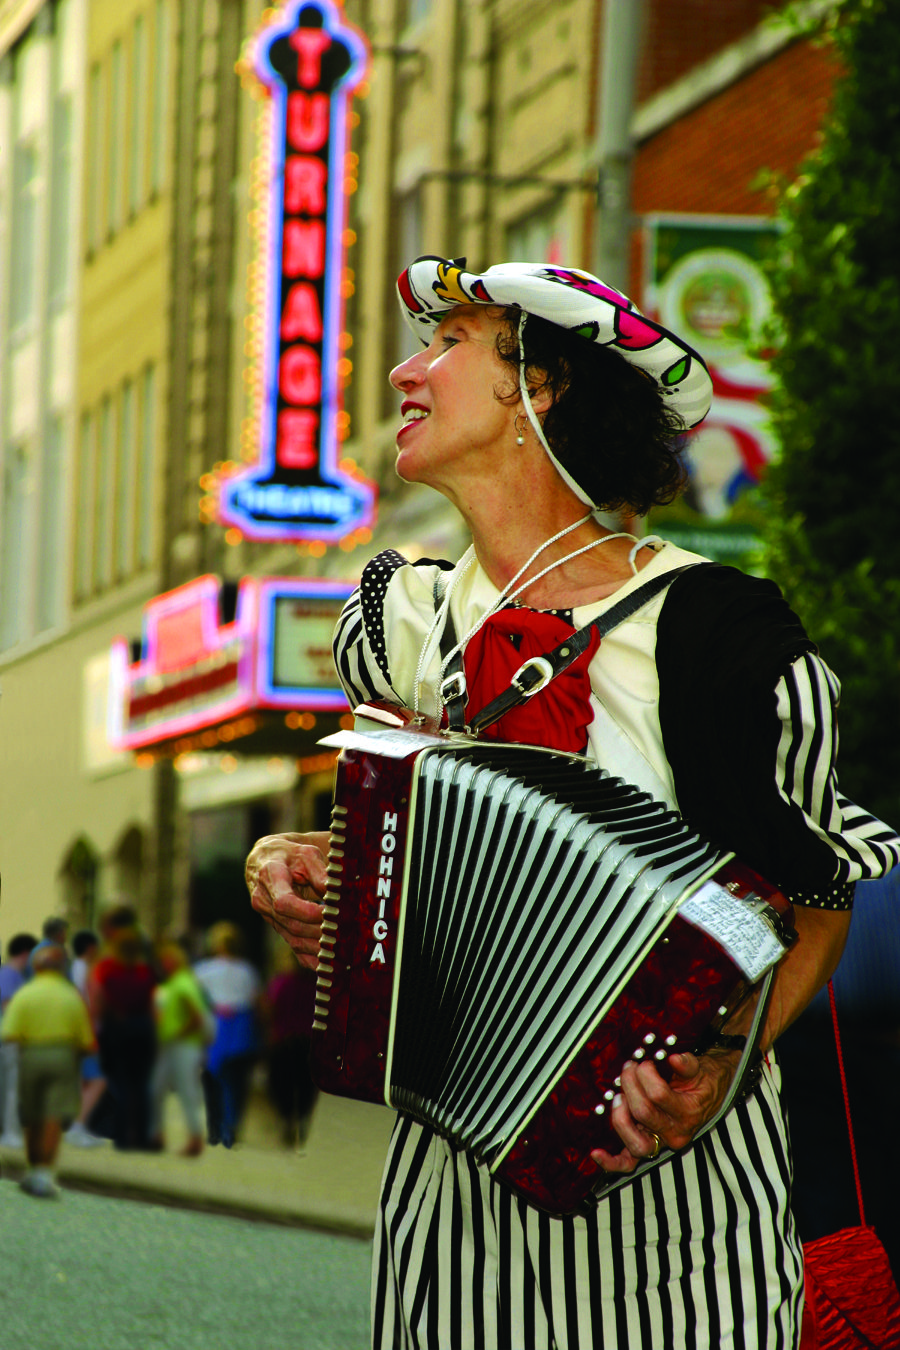 Music in the Streets on the 3rd Friday of each month, April through October.